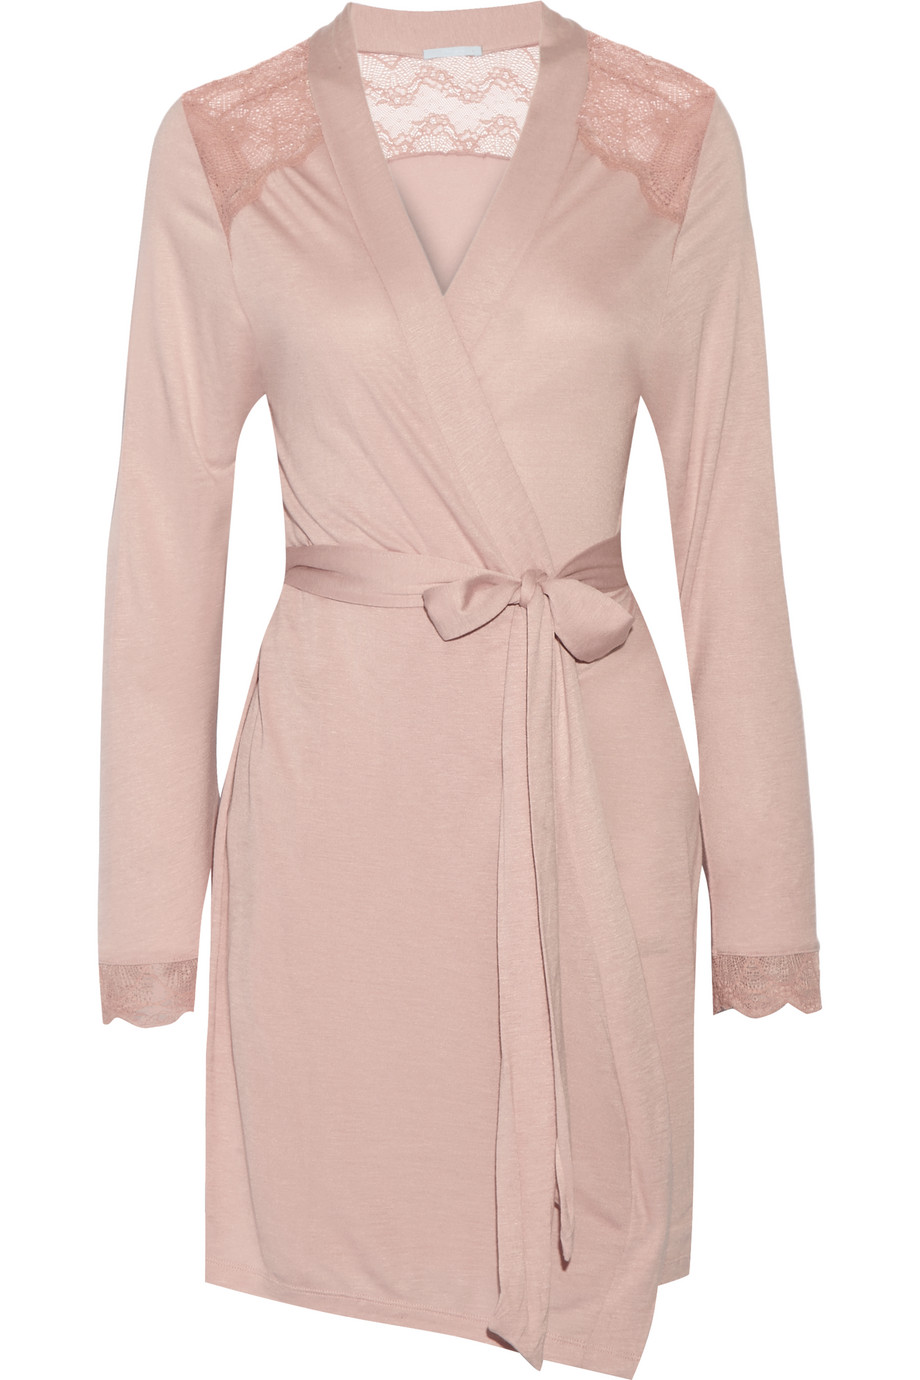 Eberjey Bonnie Lace-Paneled Jersey Robe, Antique Rose, Women's